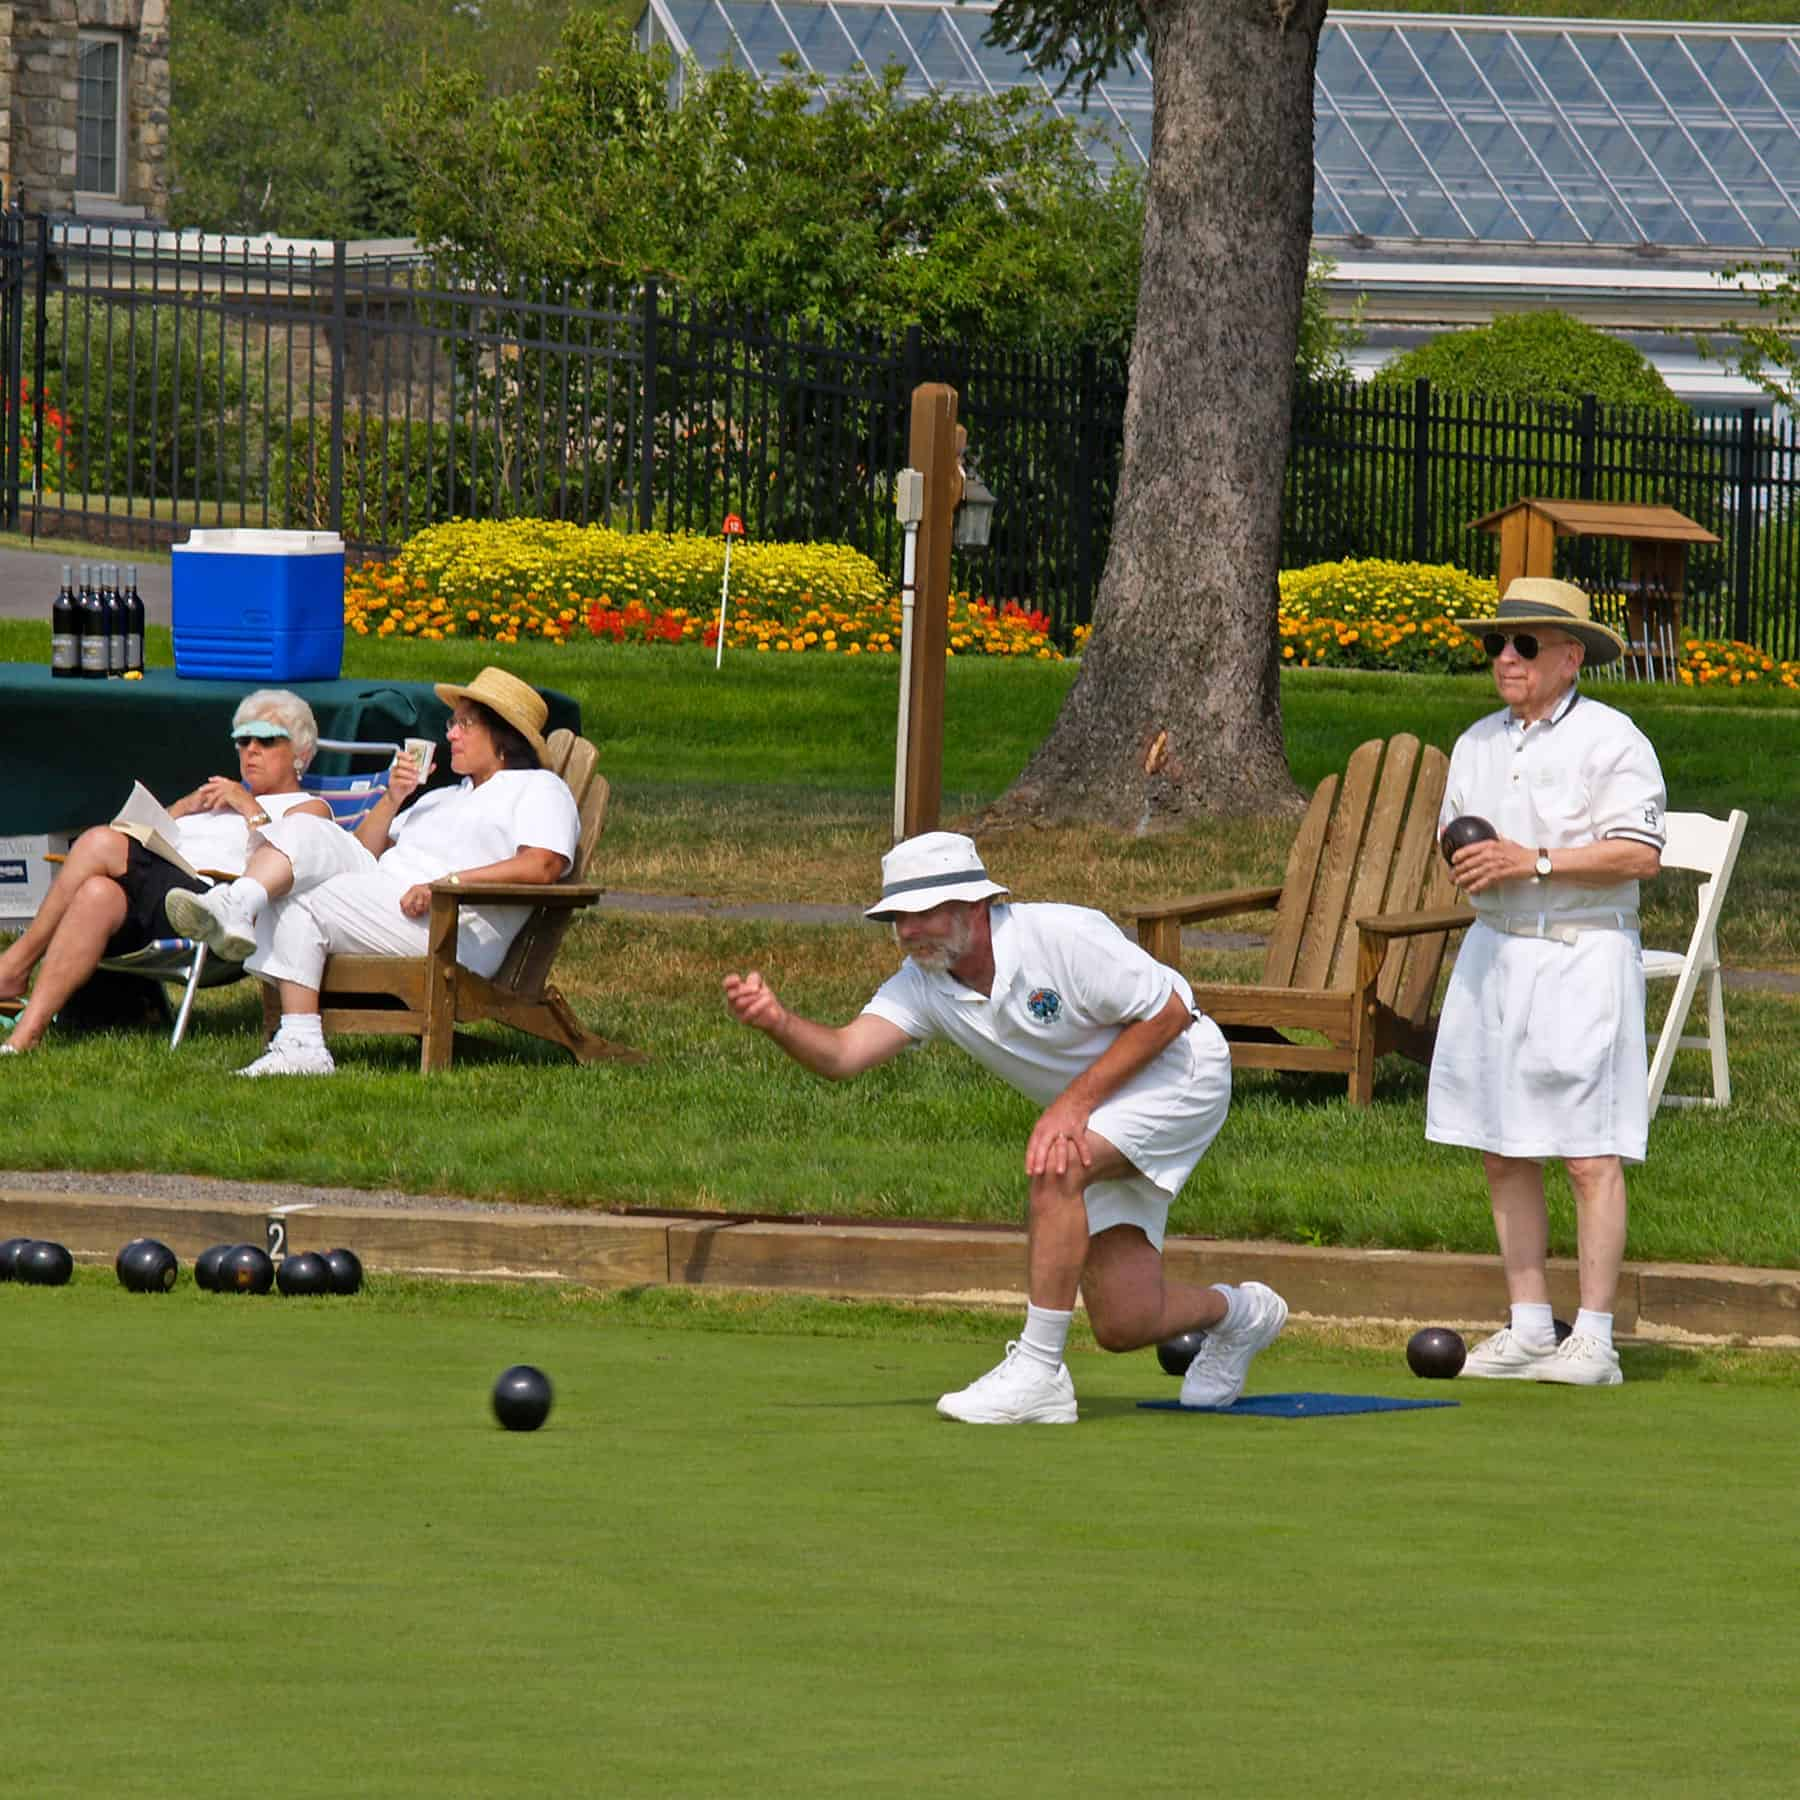 Lawn Bowling at Skytop Lodge | Activities & Adventures | Skytop Lodge Photo Gallery